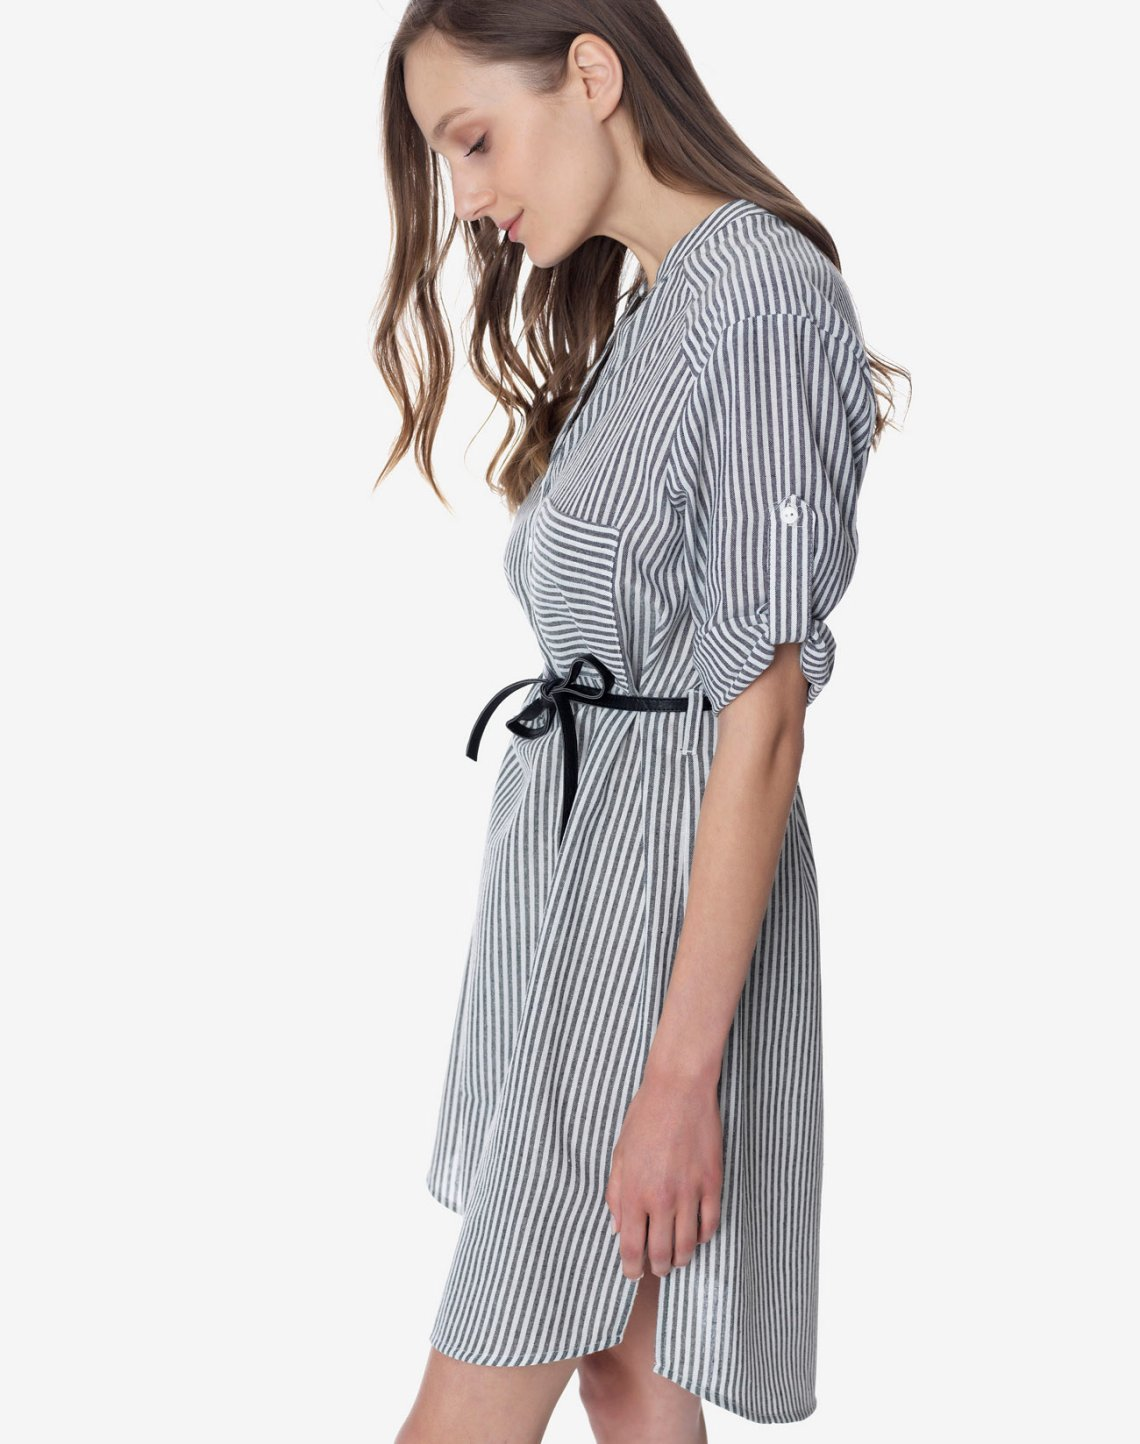 Striped dress with mandarin collar